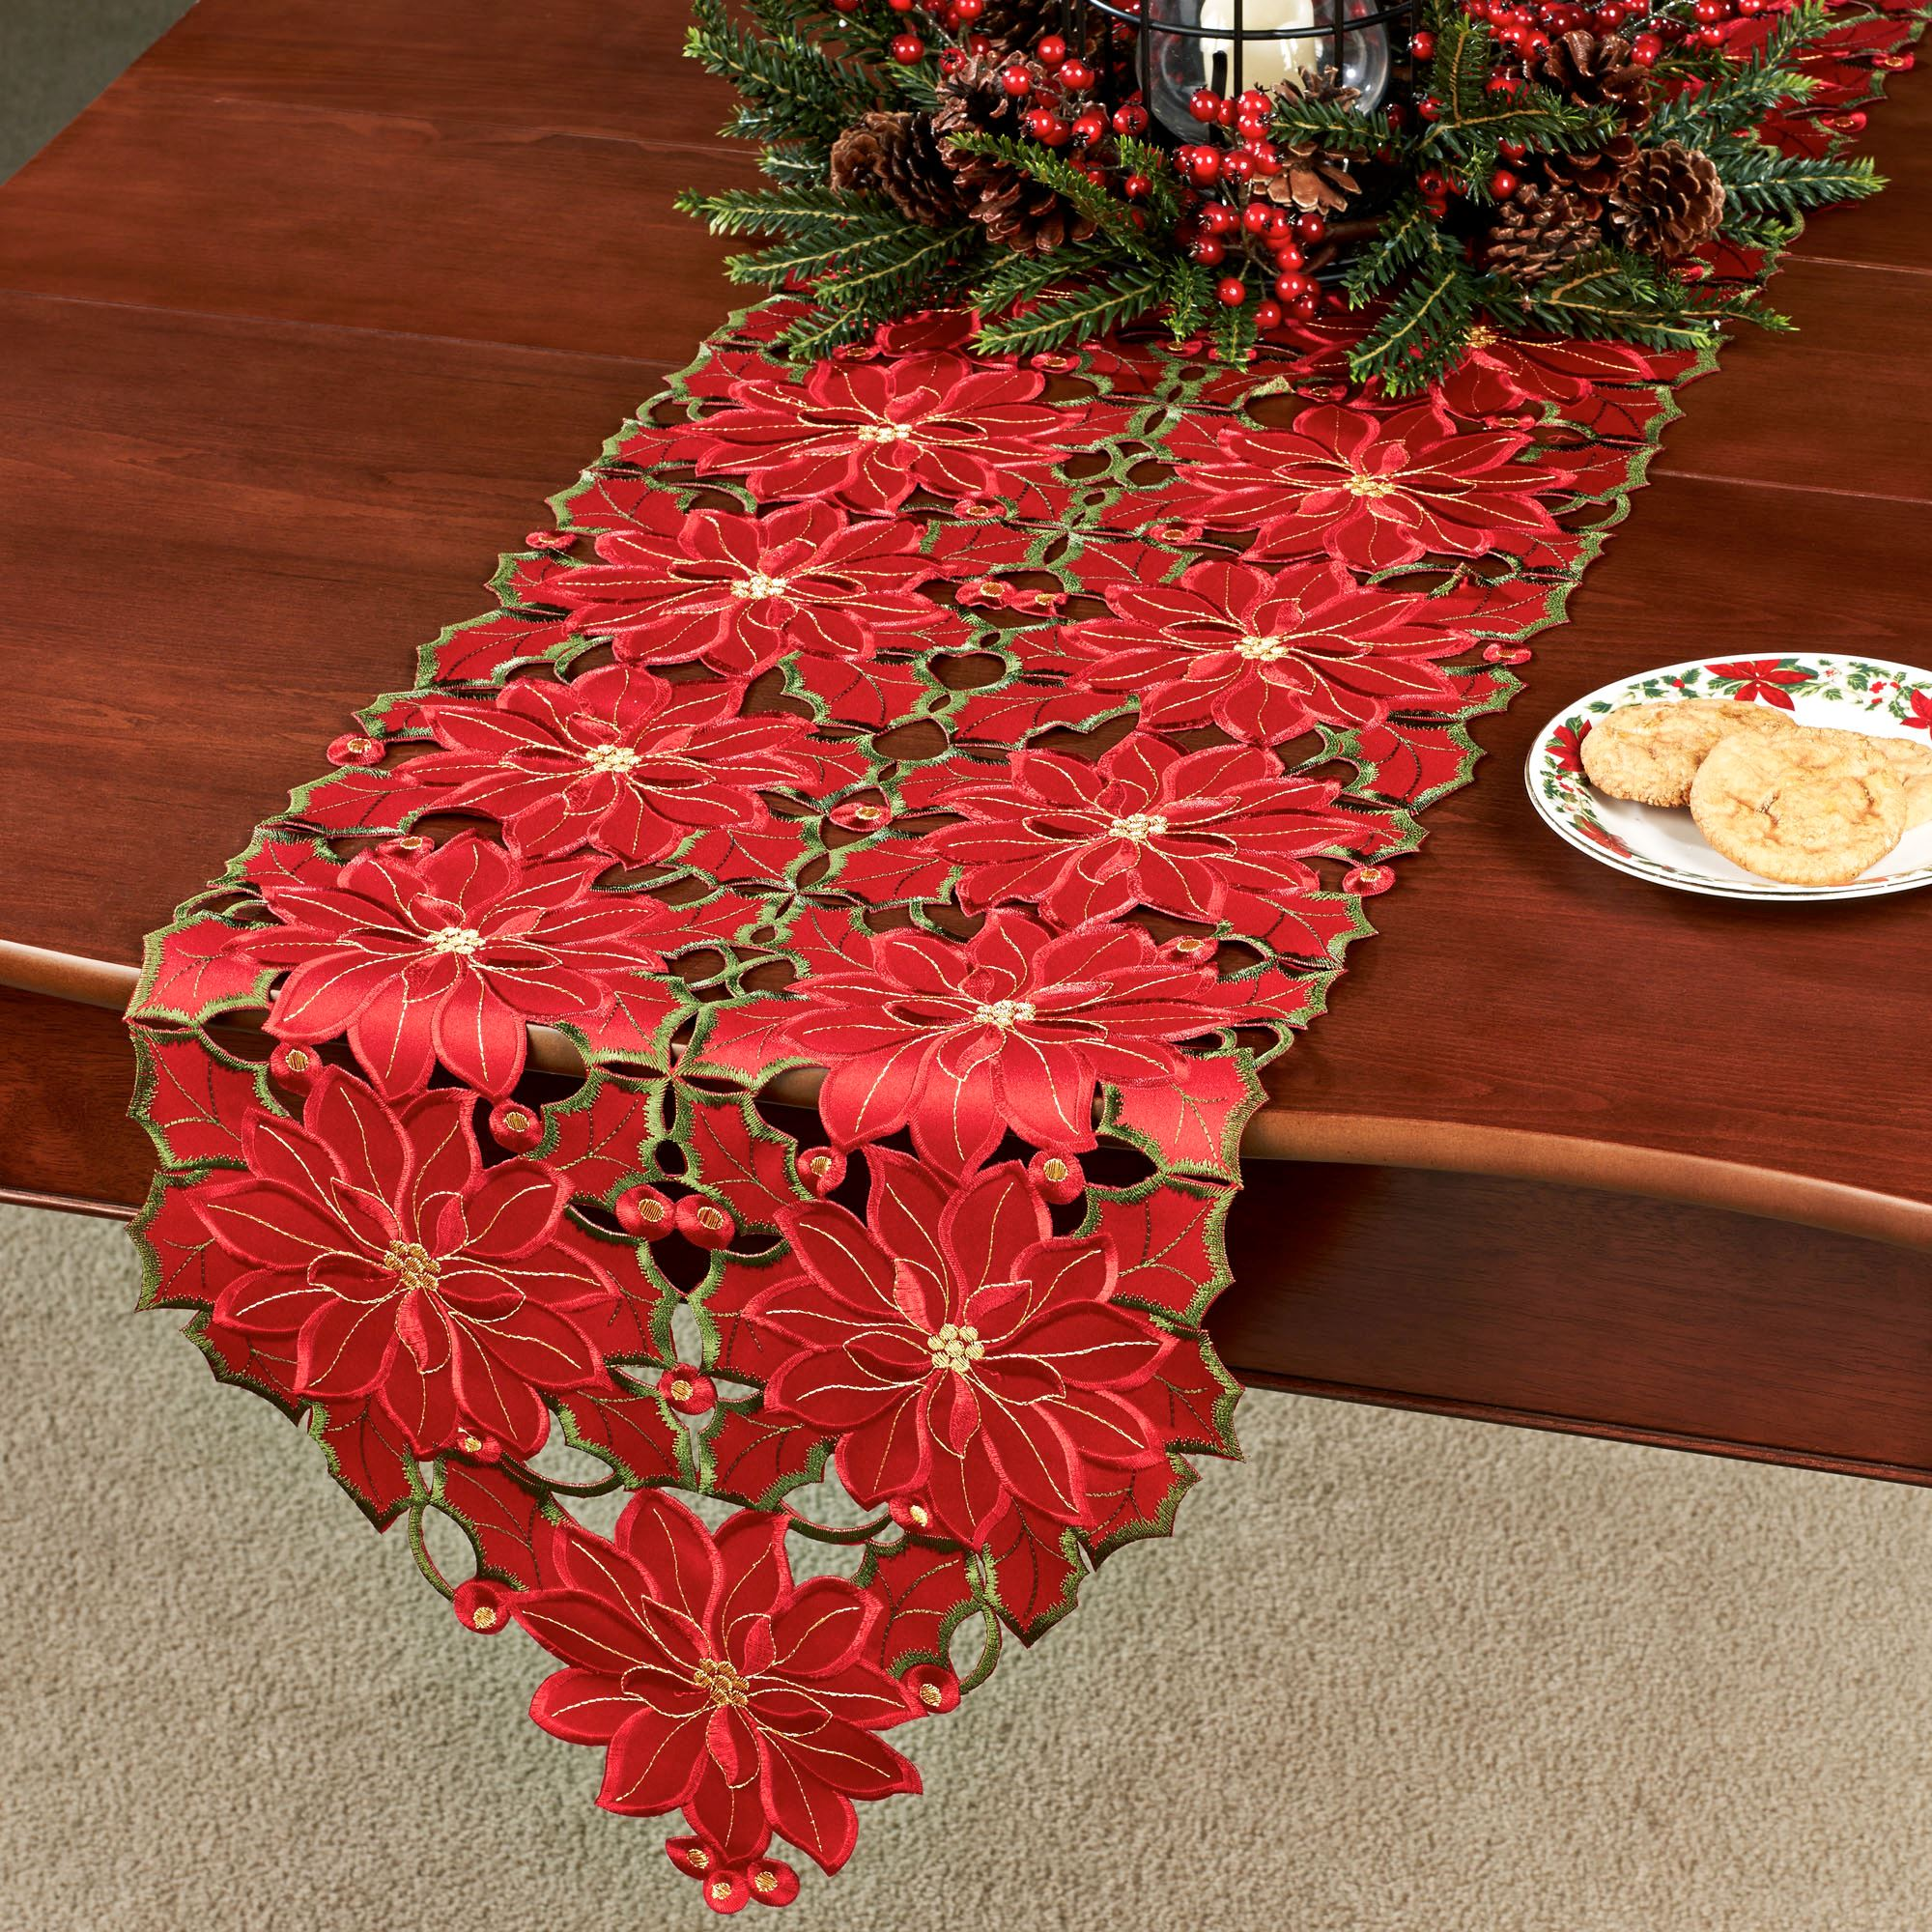 Genial Christmas Poinsettia Dining Table Runner Red 15 X 72